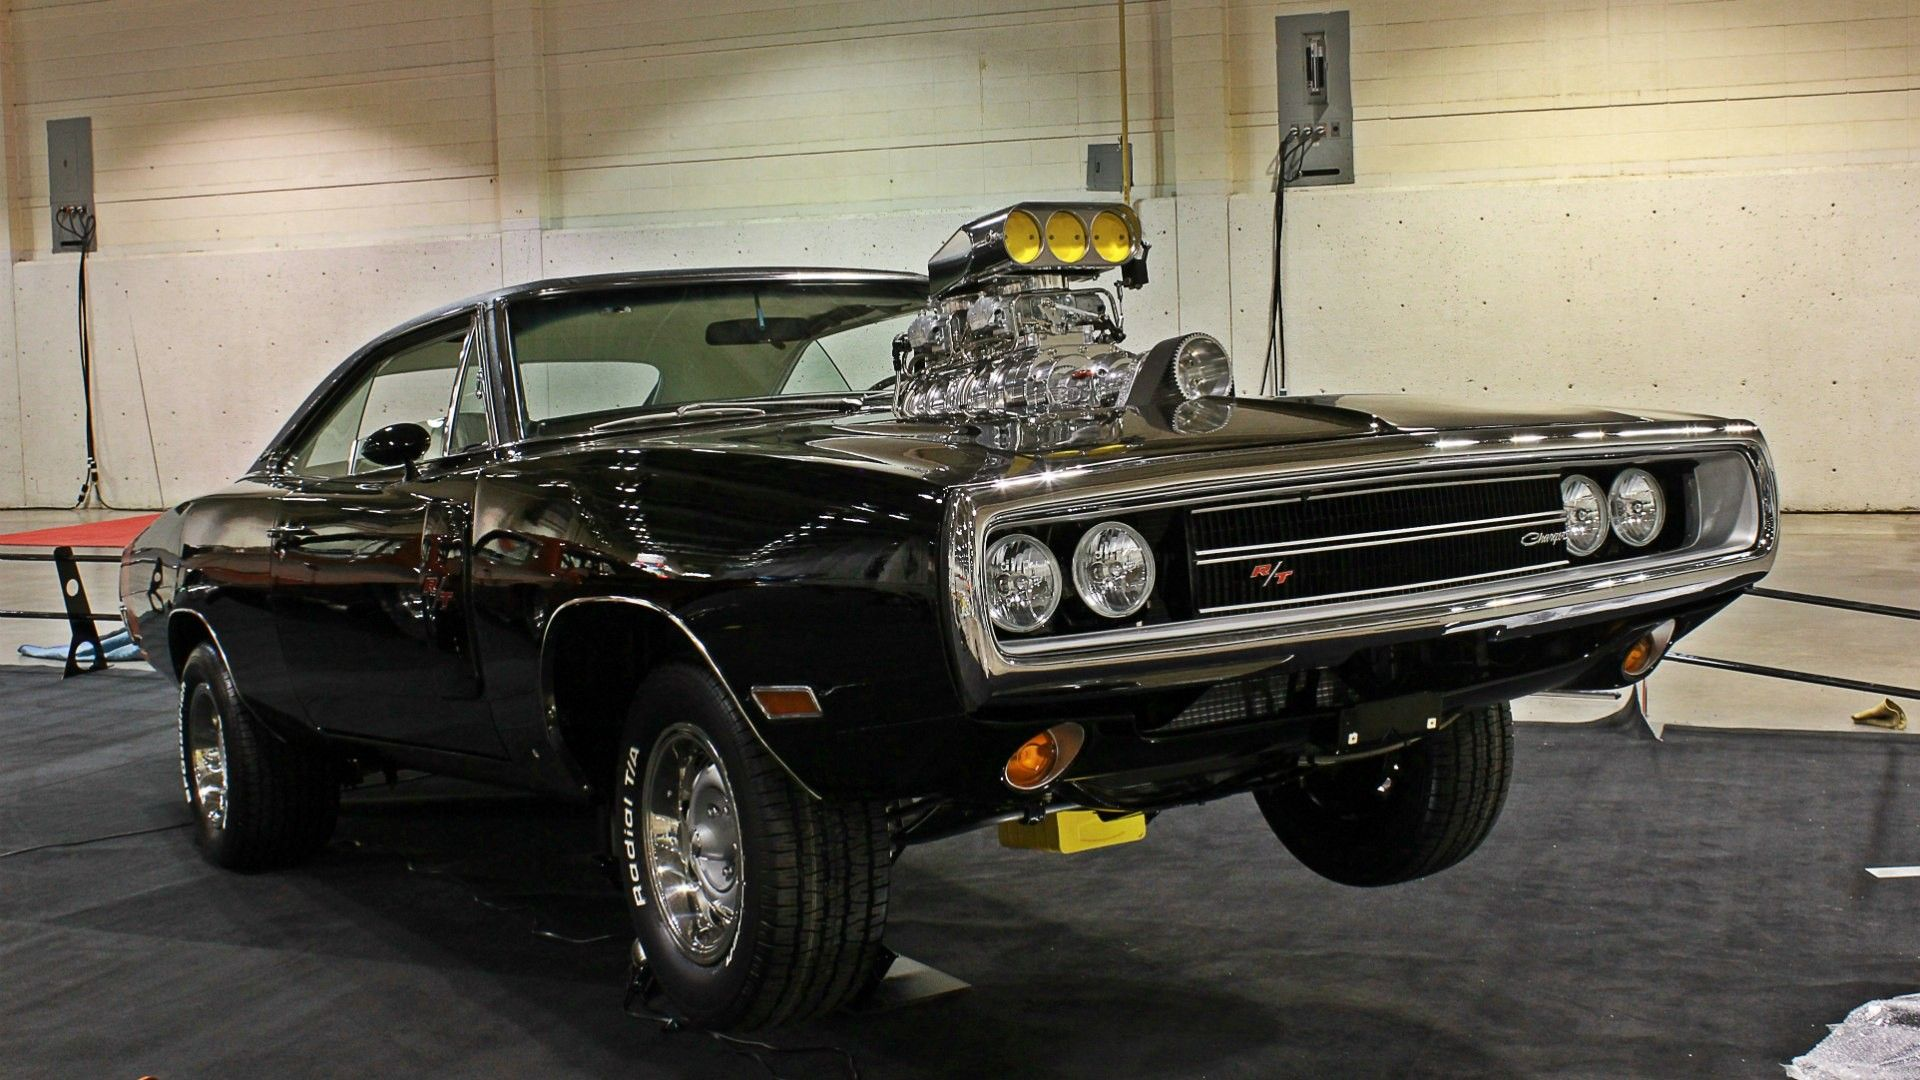 dom's pro street 1970 dodge charger r/t http://www